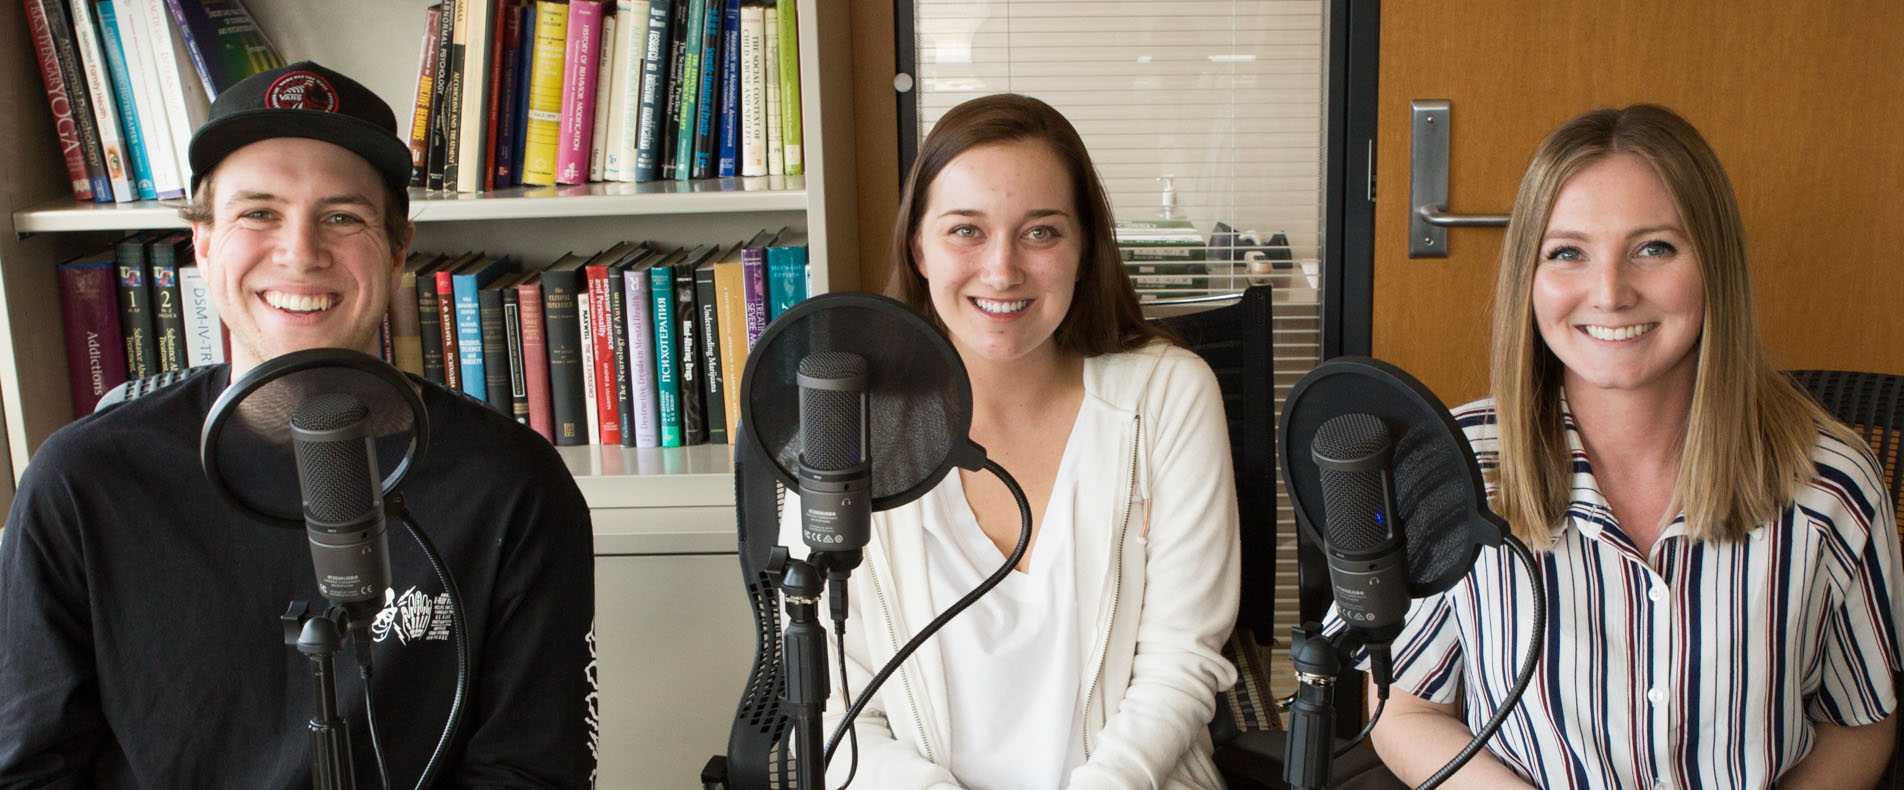 Student hosts of From the Front Row: Student Voices in Public Health